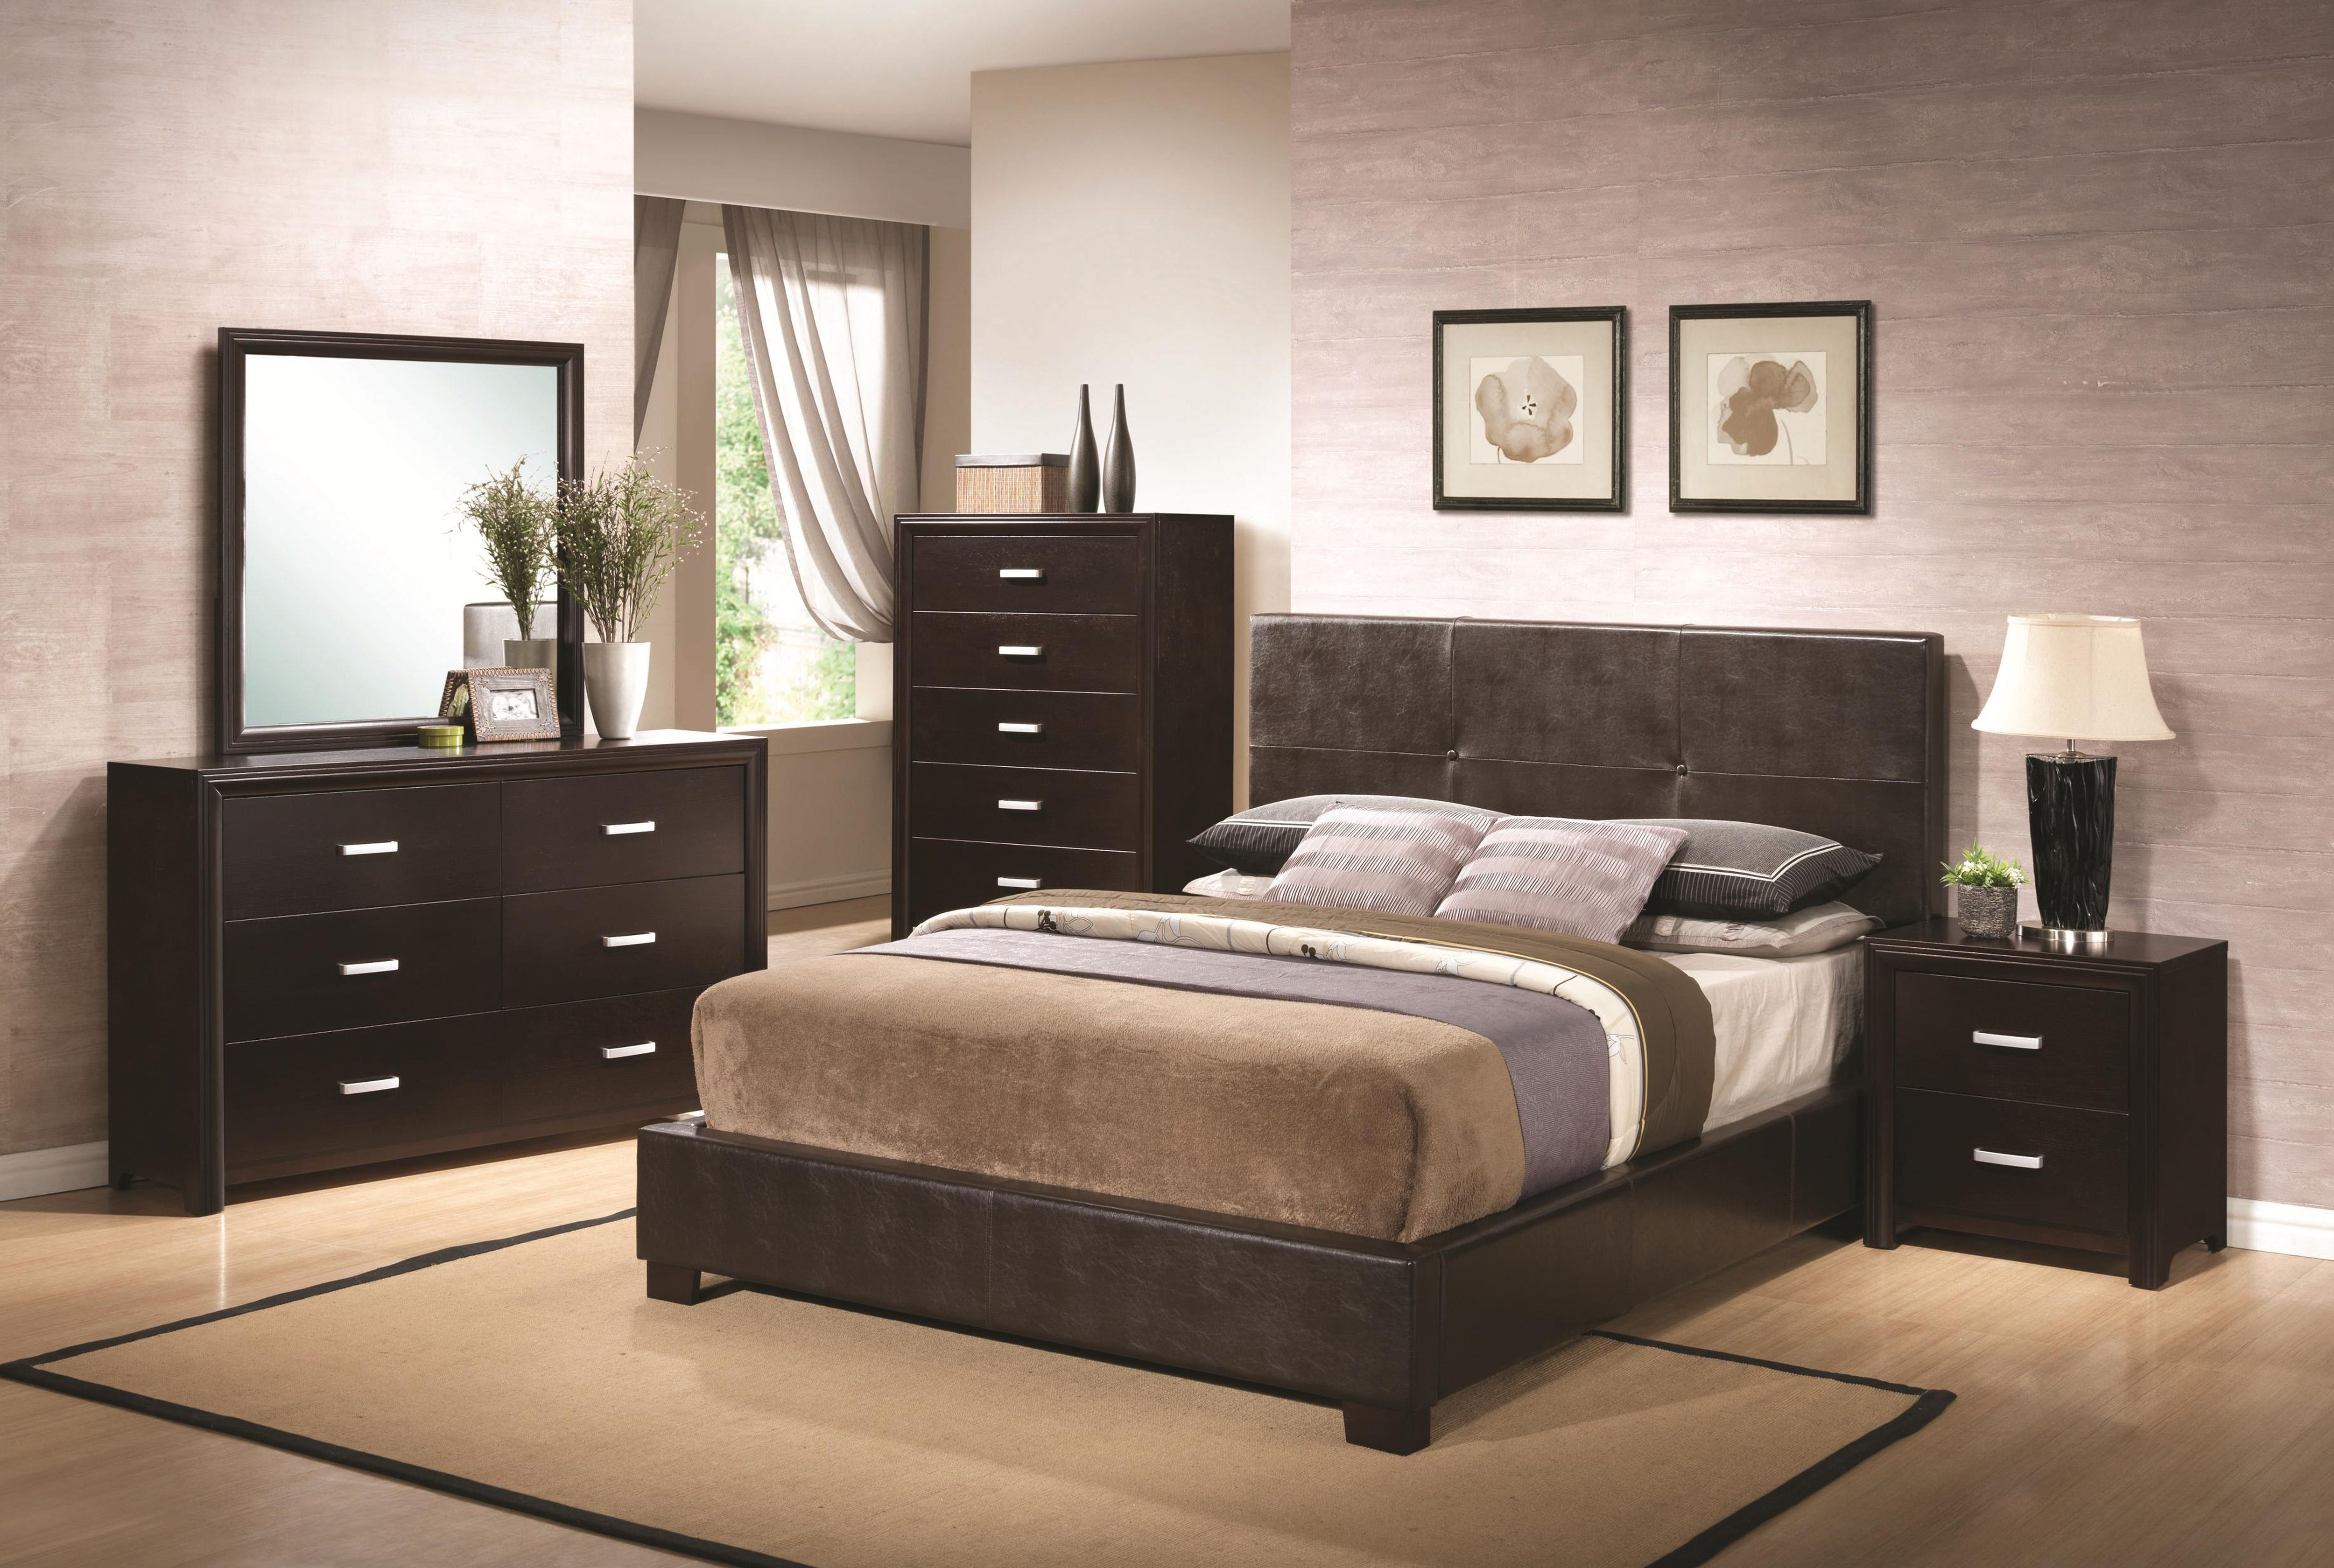 Bedroom Set Ikea